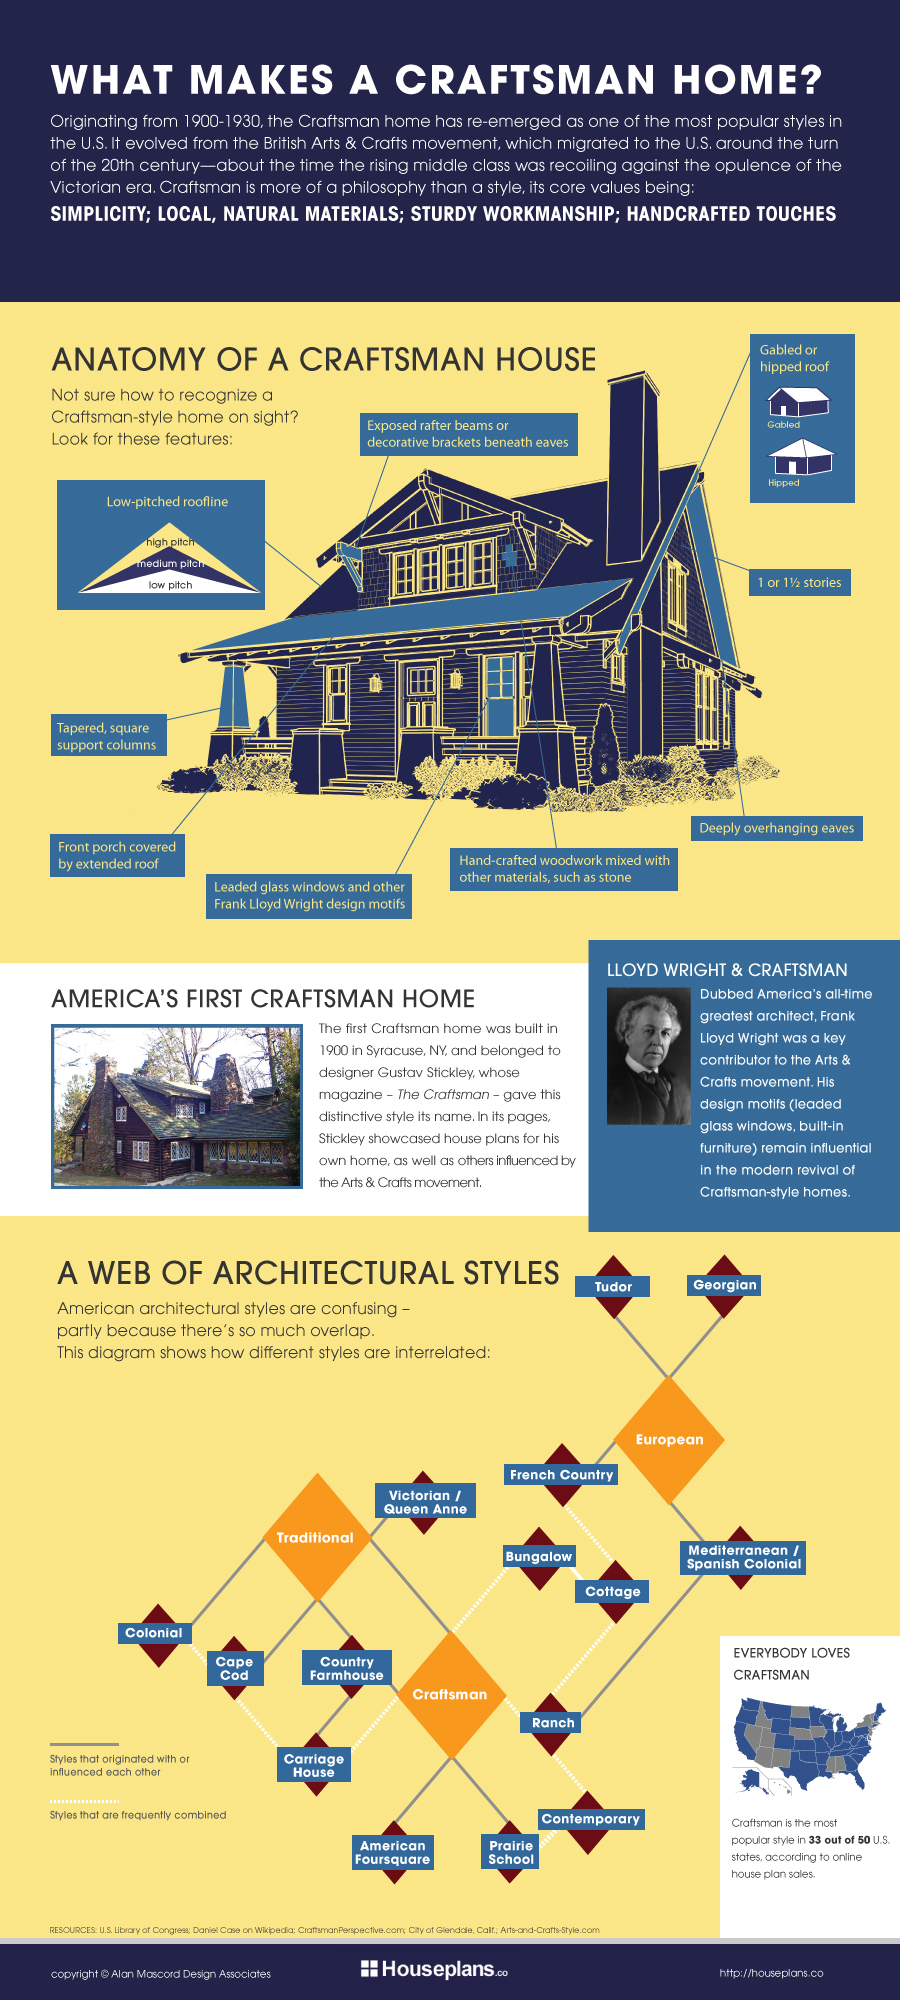 What Makes a Craftsman Home Infographic by Houseplans.co